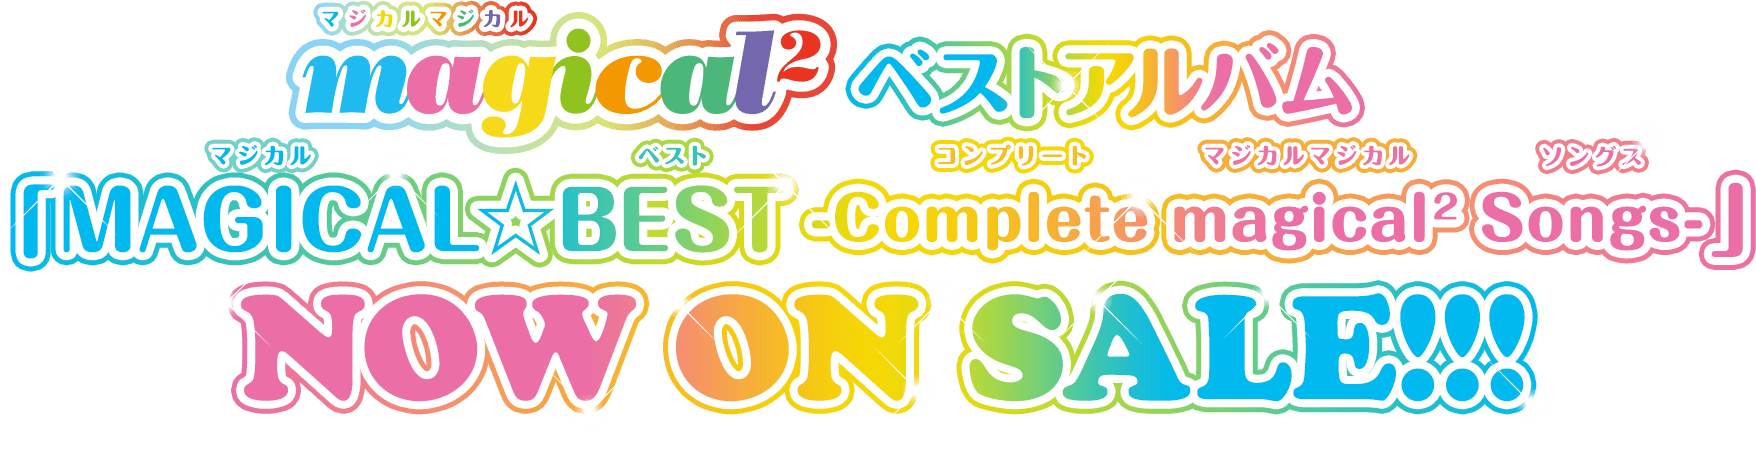 magical²ベストアルバム「MAGICAL☆BEST -Complete magical² Songs-」2019.2.13wed発売!!!